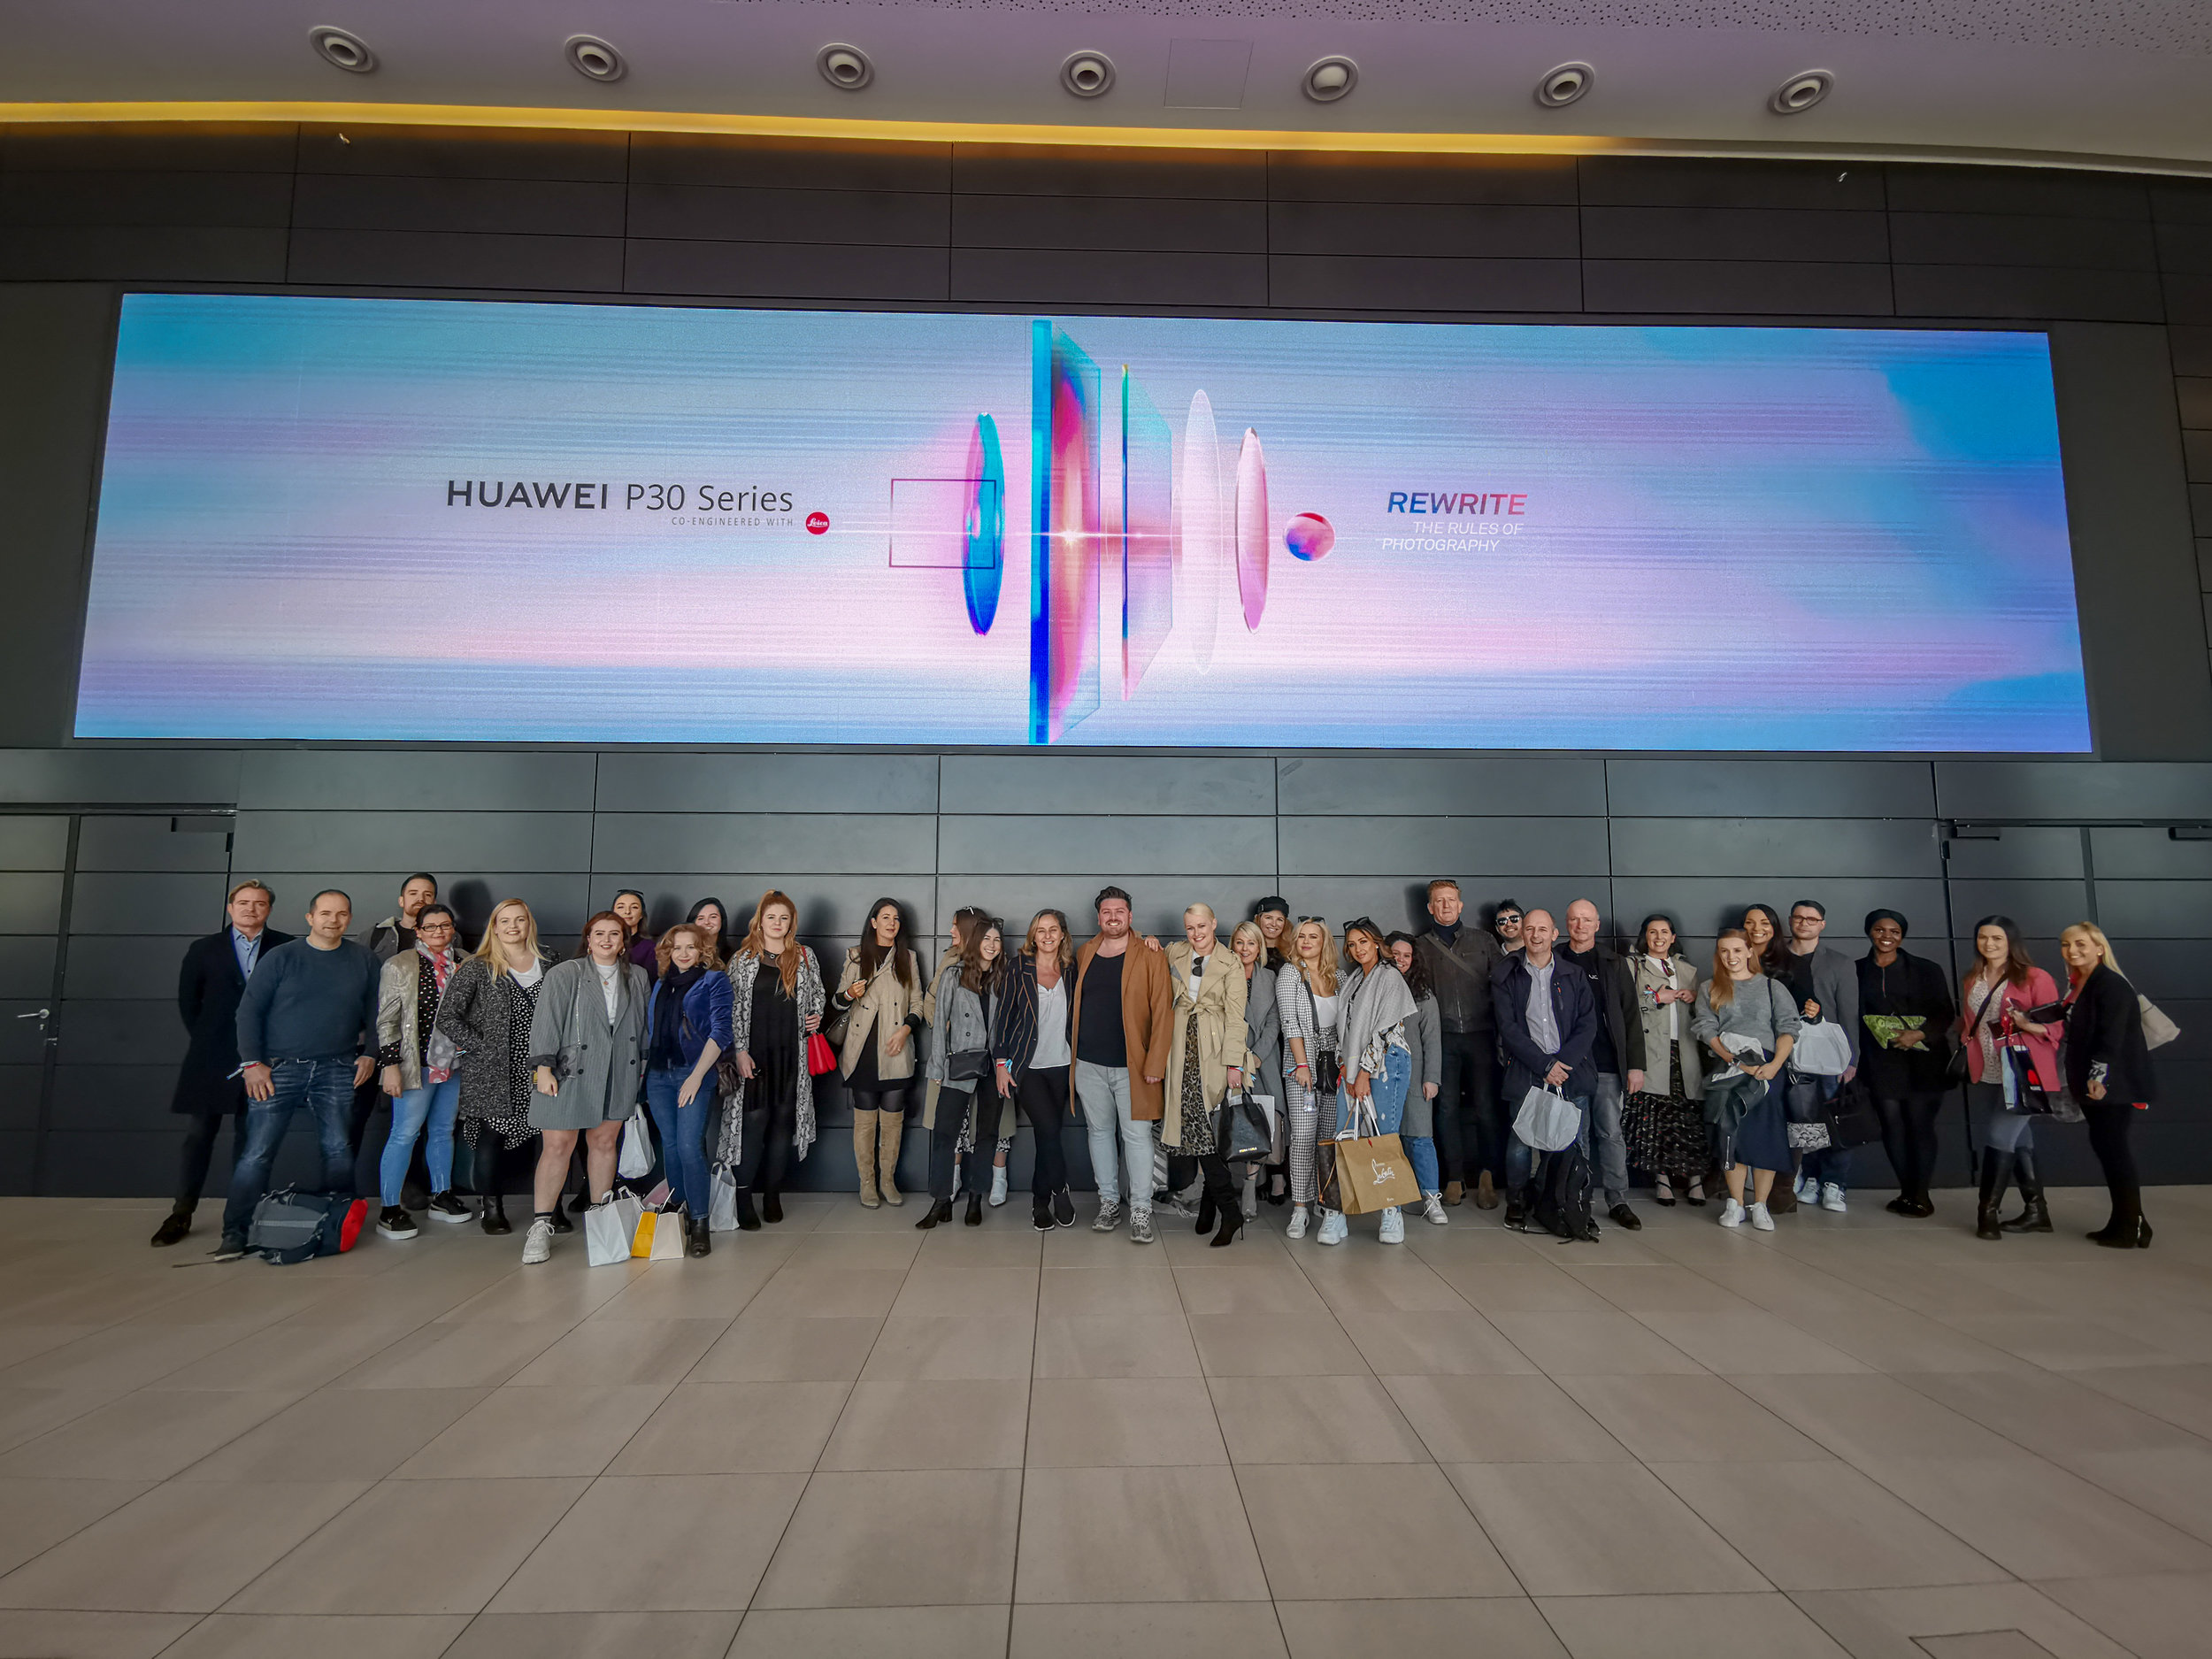 The press team at the HUAWEI Paris launch  Credit: Evan Doherty